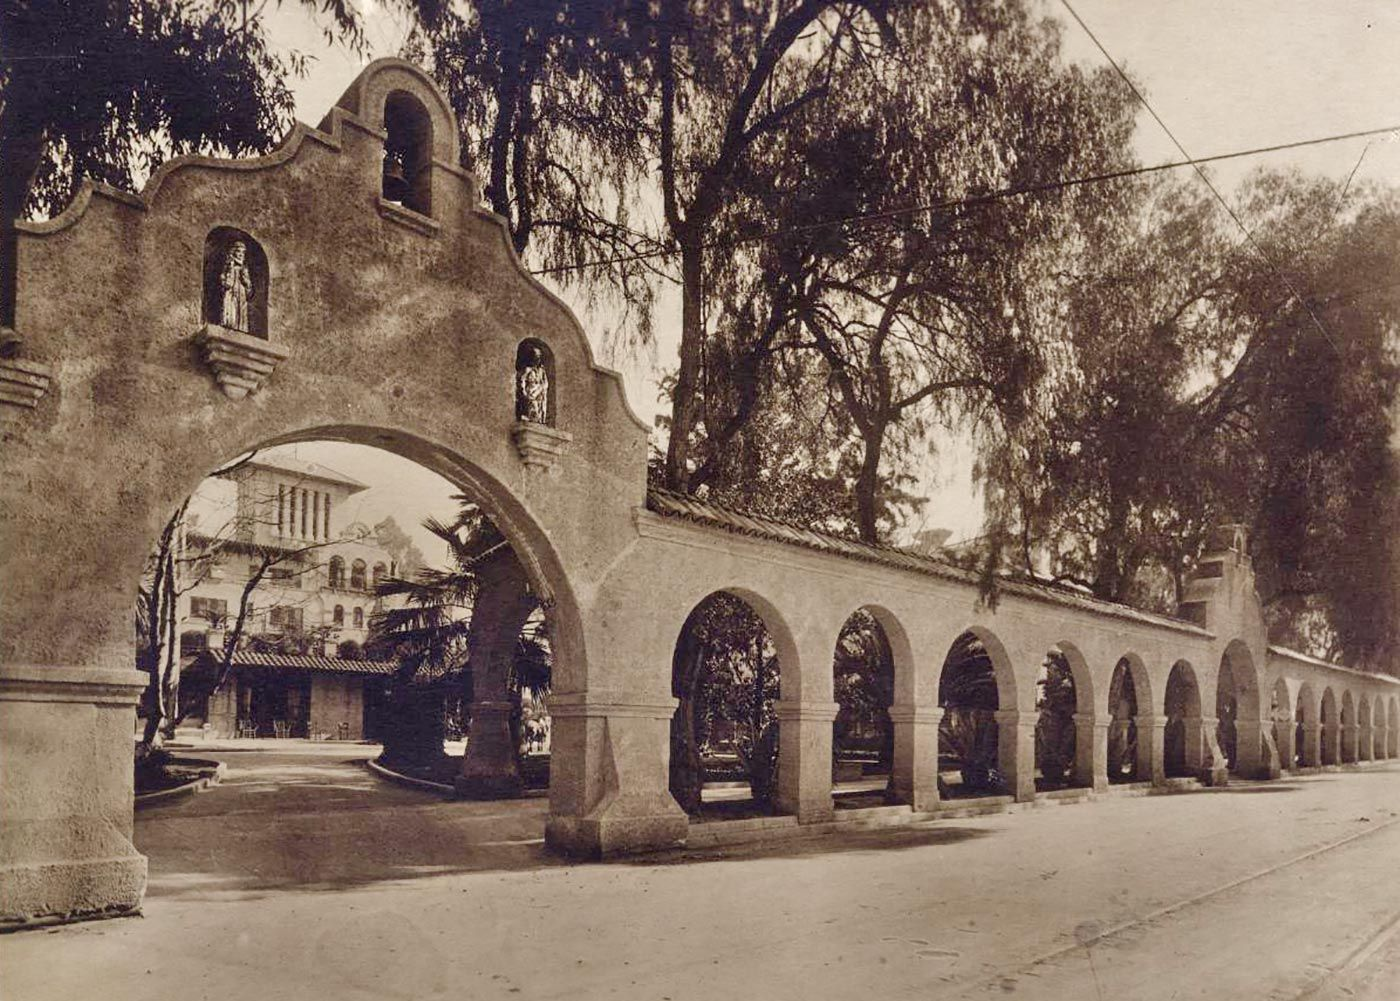 Vintage photo of the Mission Inn's arches in the 1920s